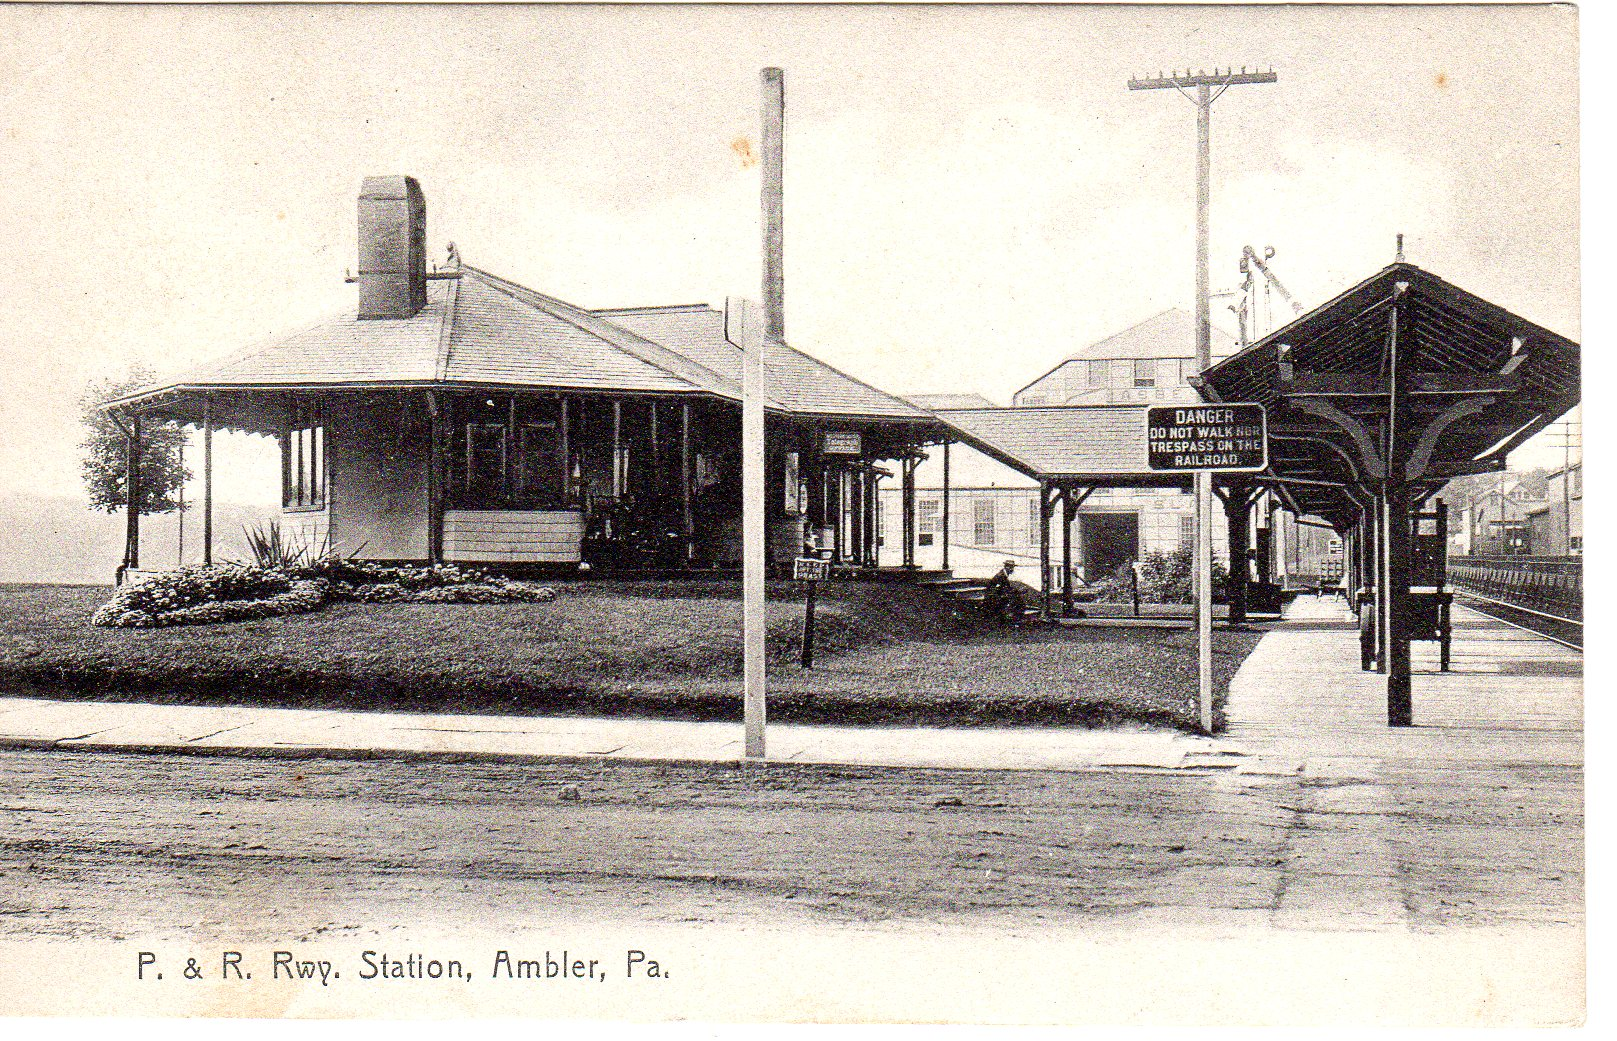 Post Card Collection (E Simon)_2682_09_P&R Rwy Station, Ambler, Pa_5 Sep 1912